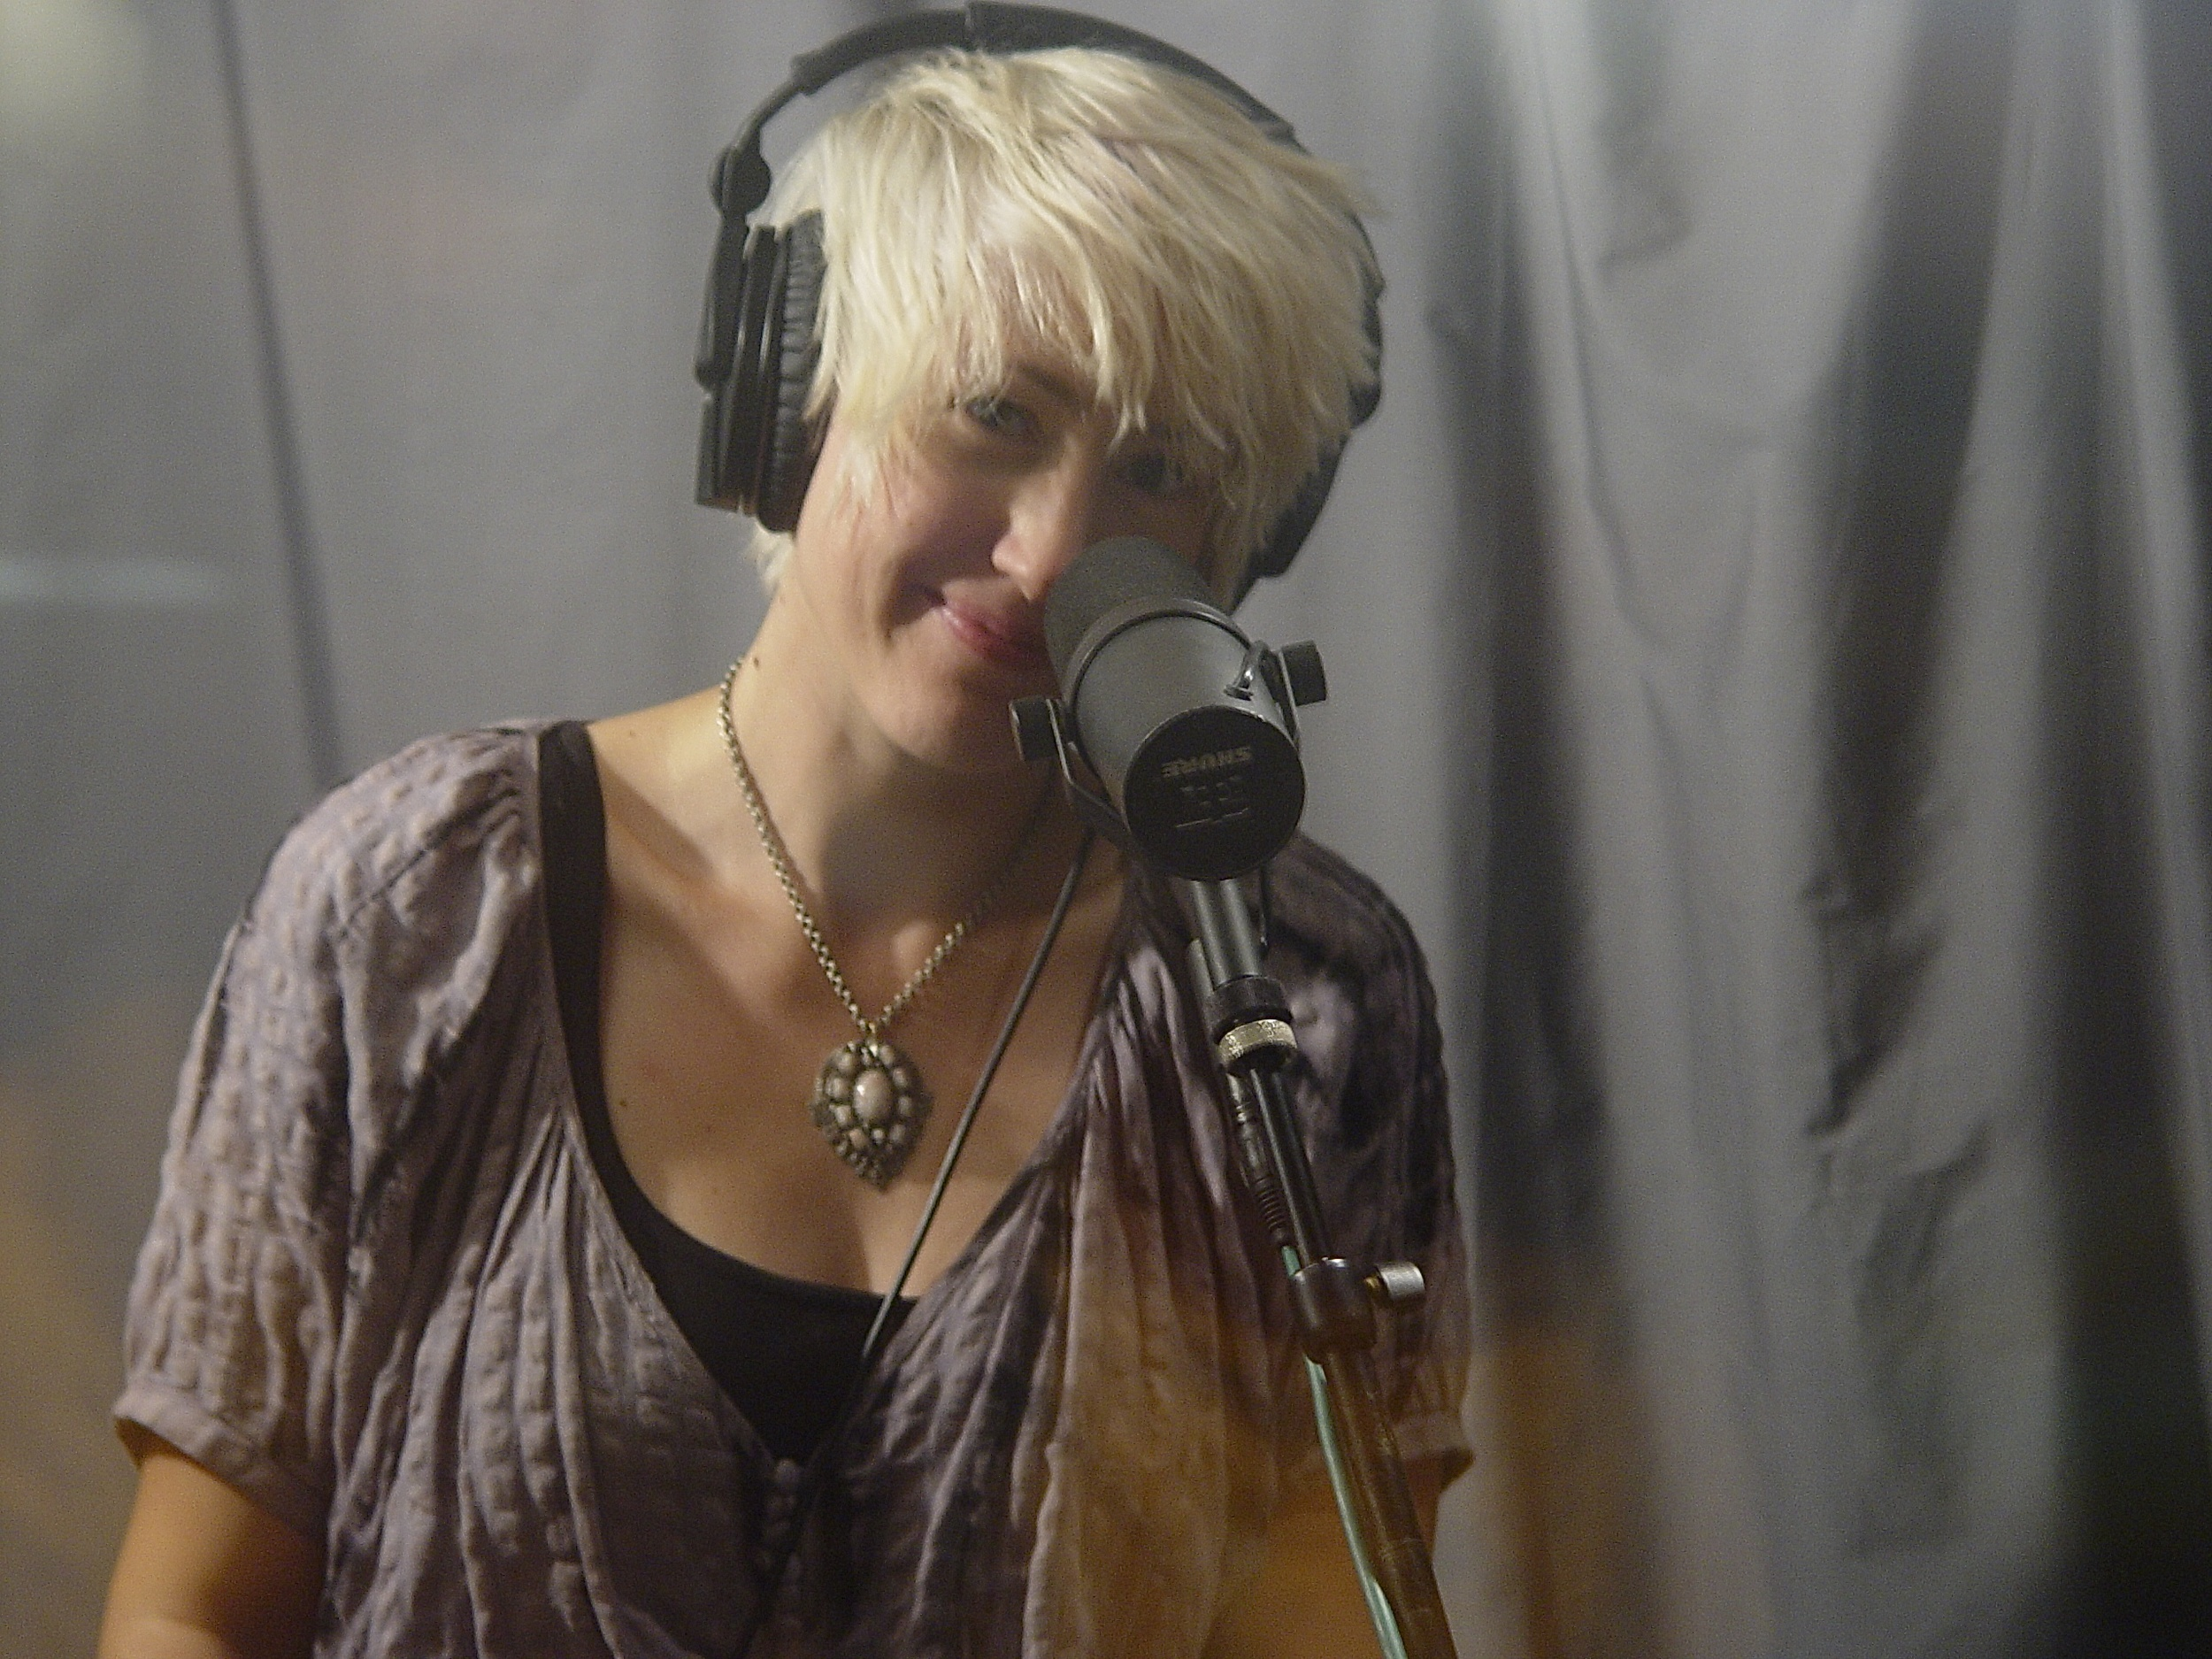 In the vocal booth at Destiny Studios in Nashville, TN.